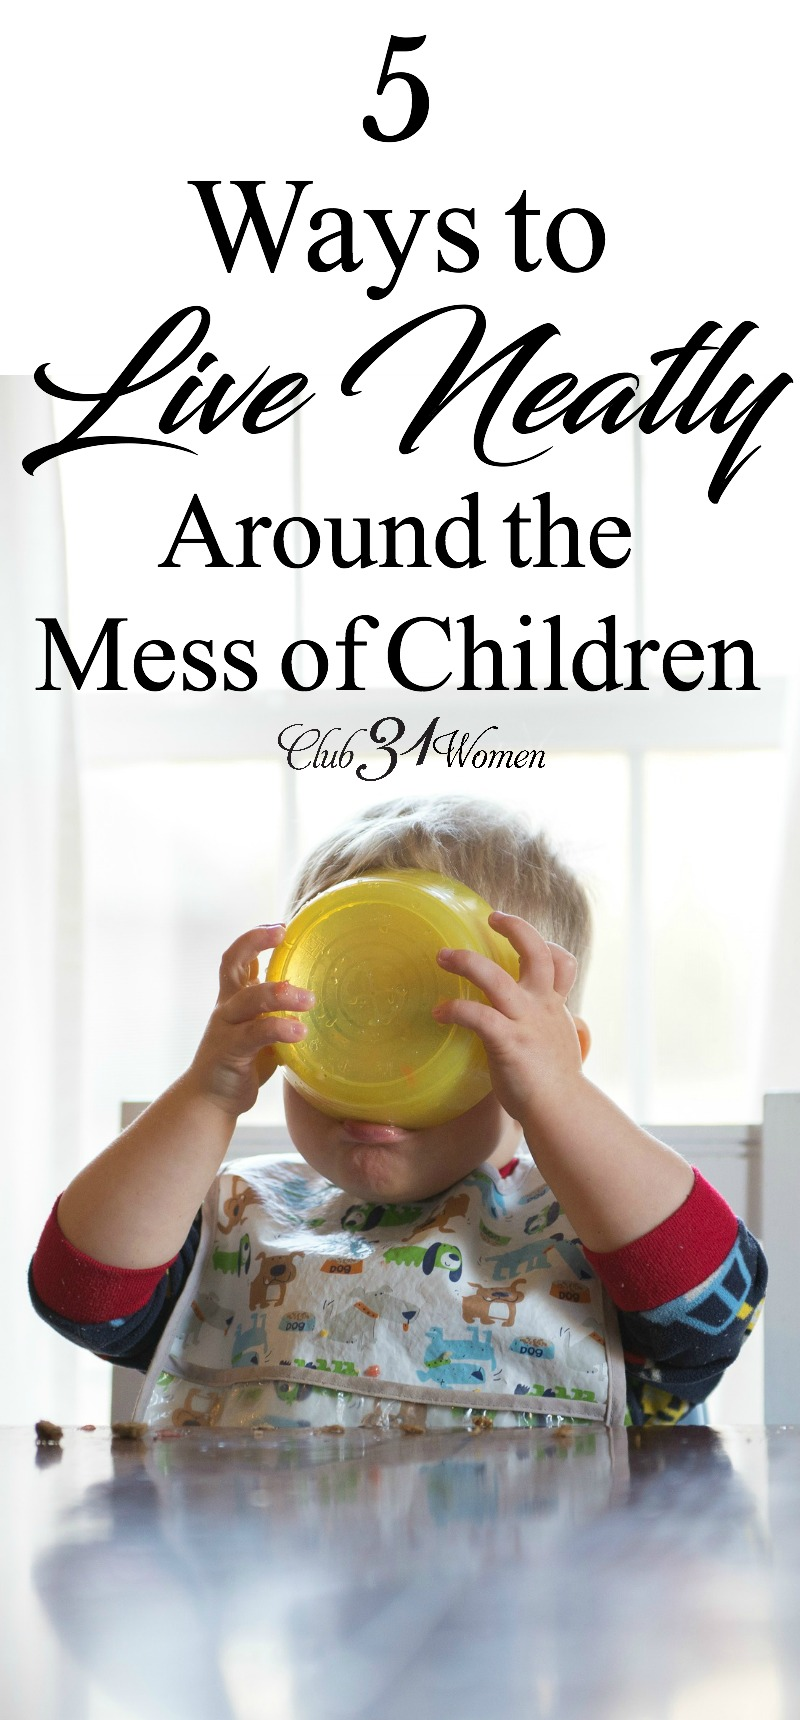 Having children can wreak havoc on a clean home, no doubt. So how can we keep up with the mess so we aren't constantly living in chaos? via @Club31Women